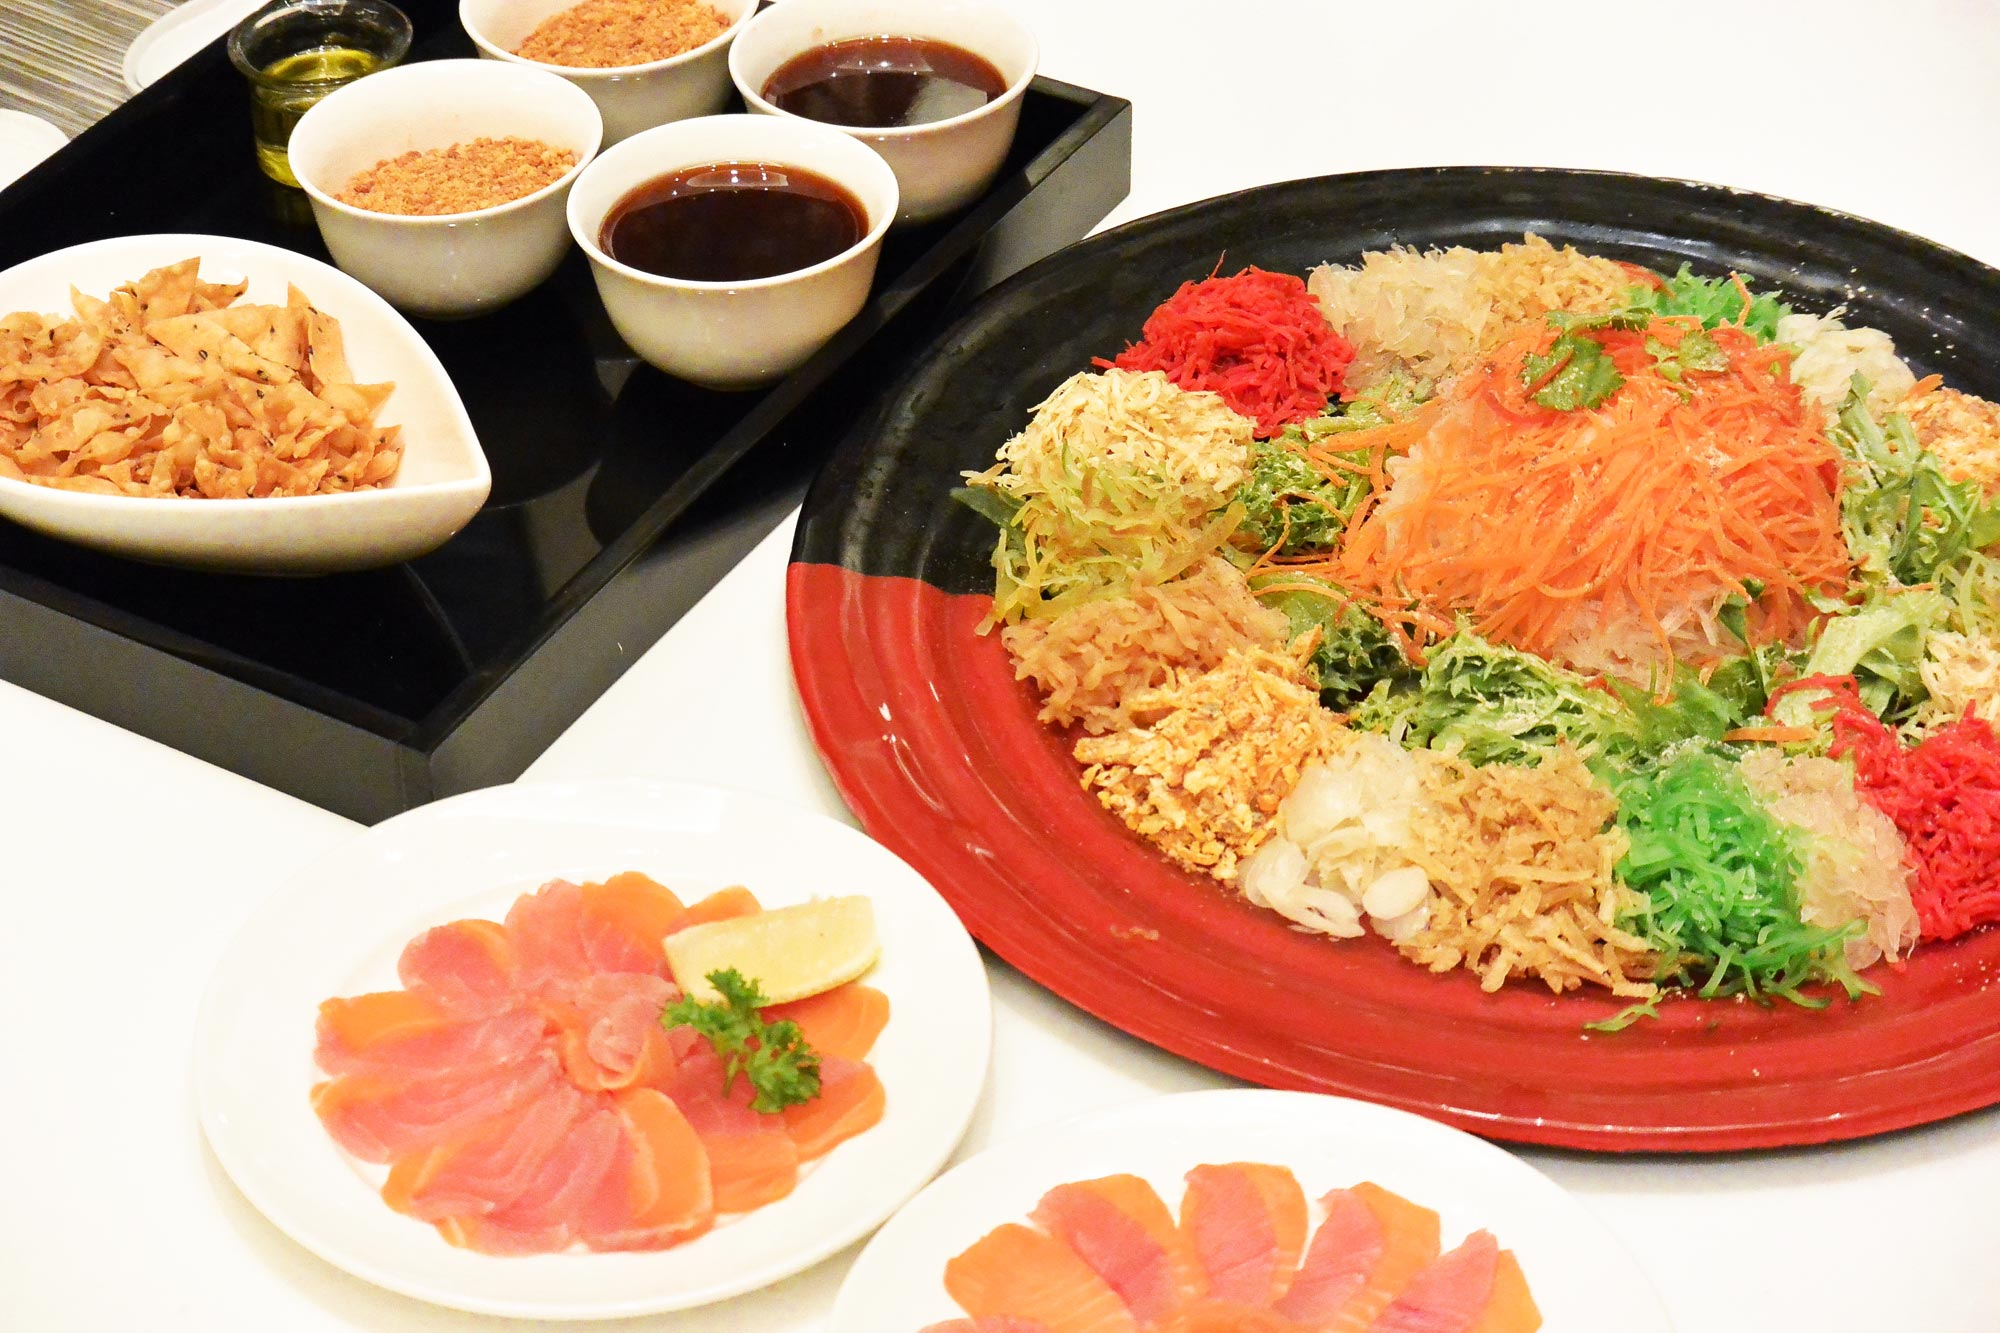 Yee Sang is a popular dish in Malaysia and other South East Asian countries